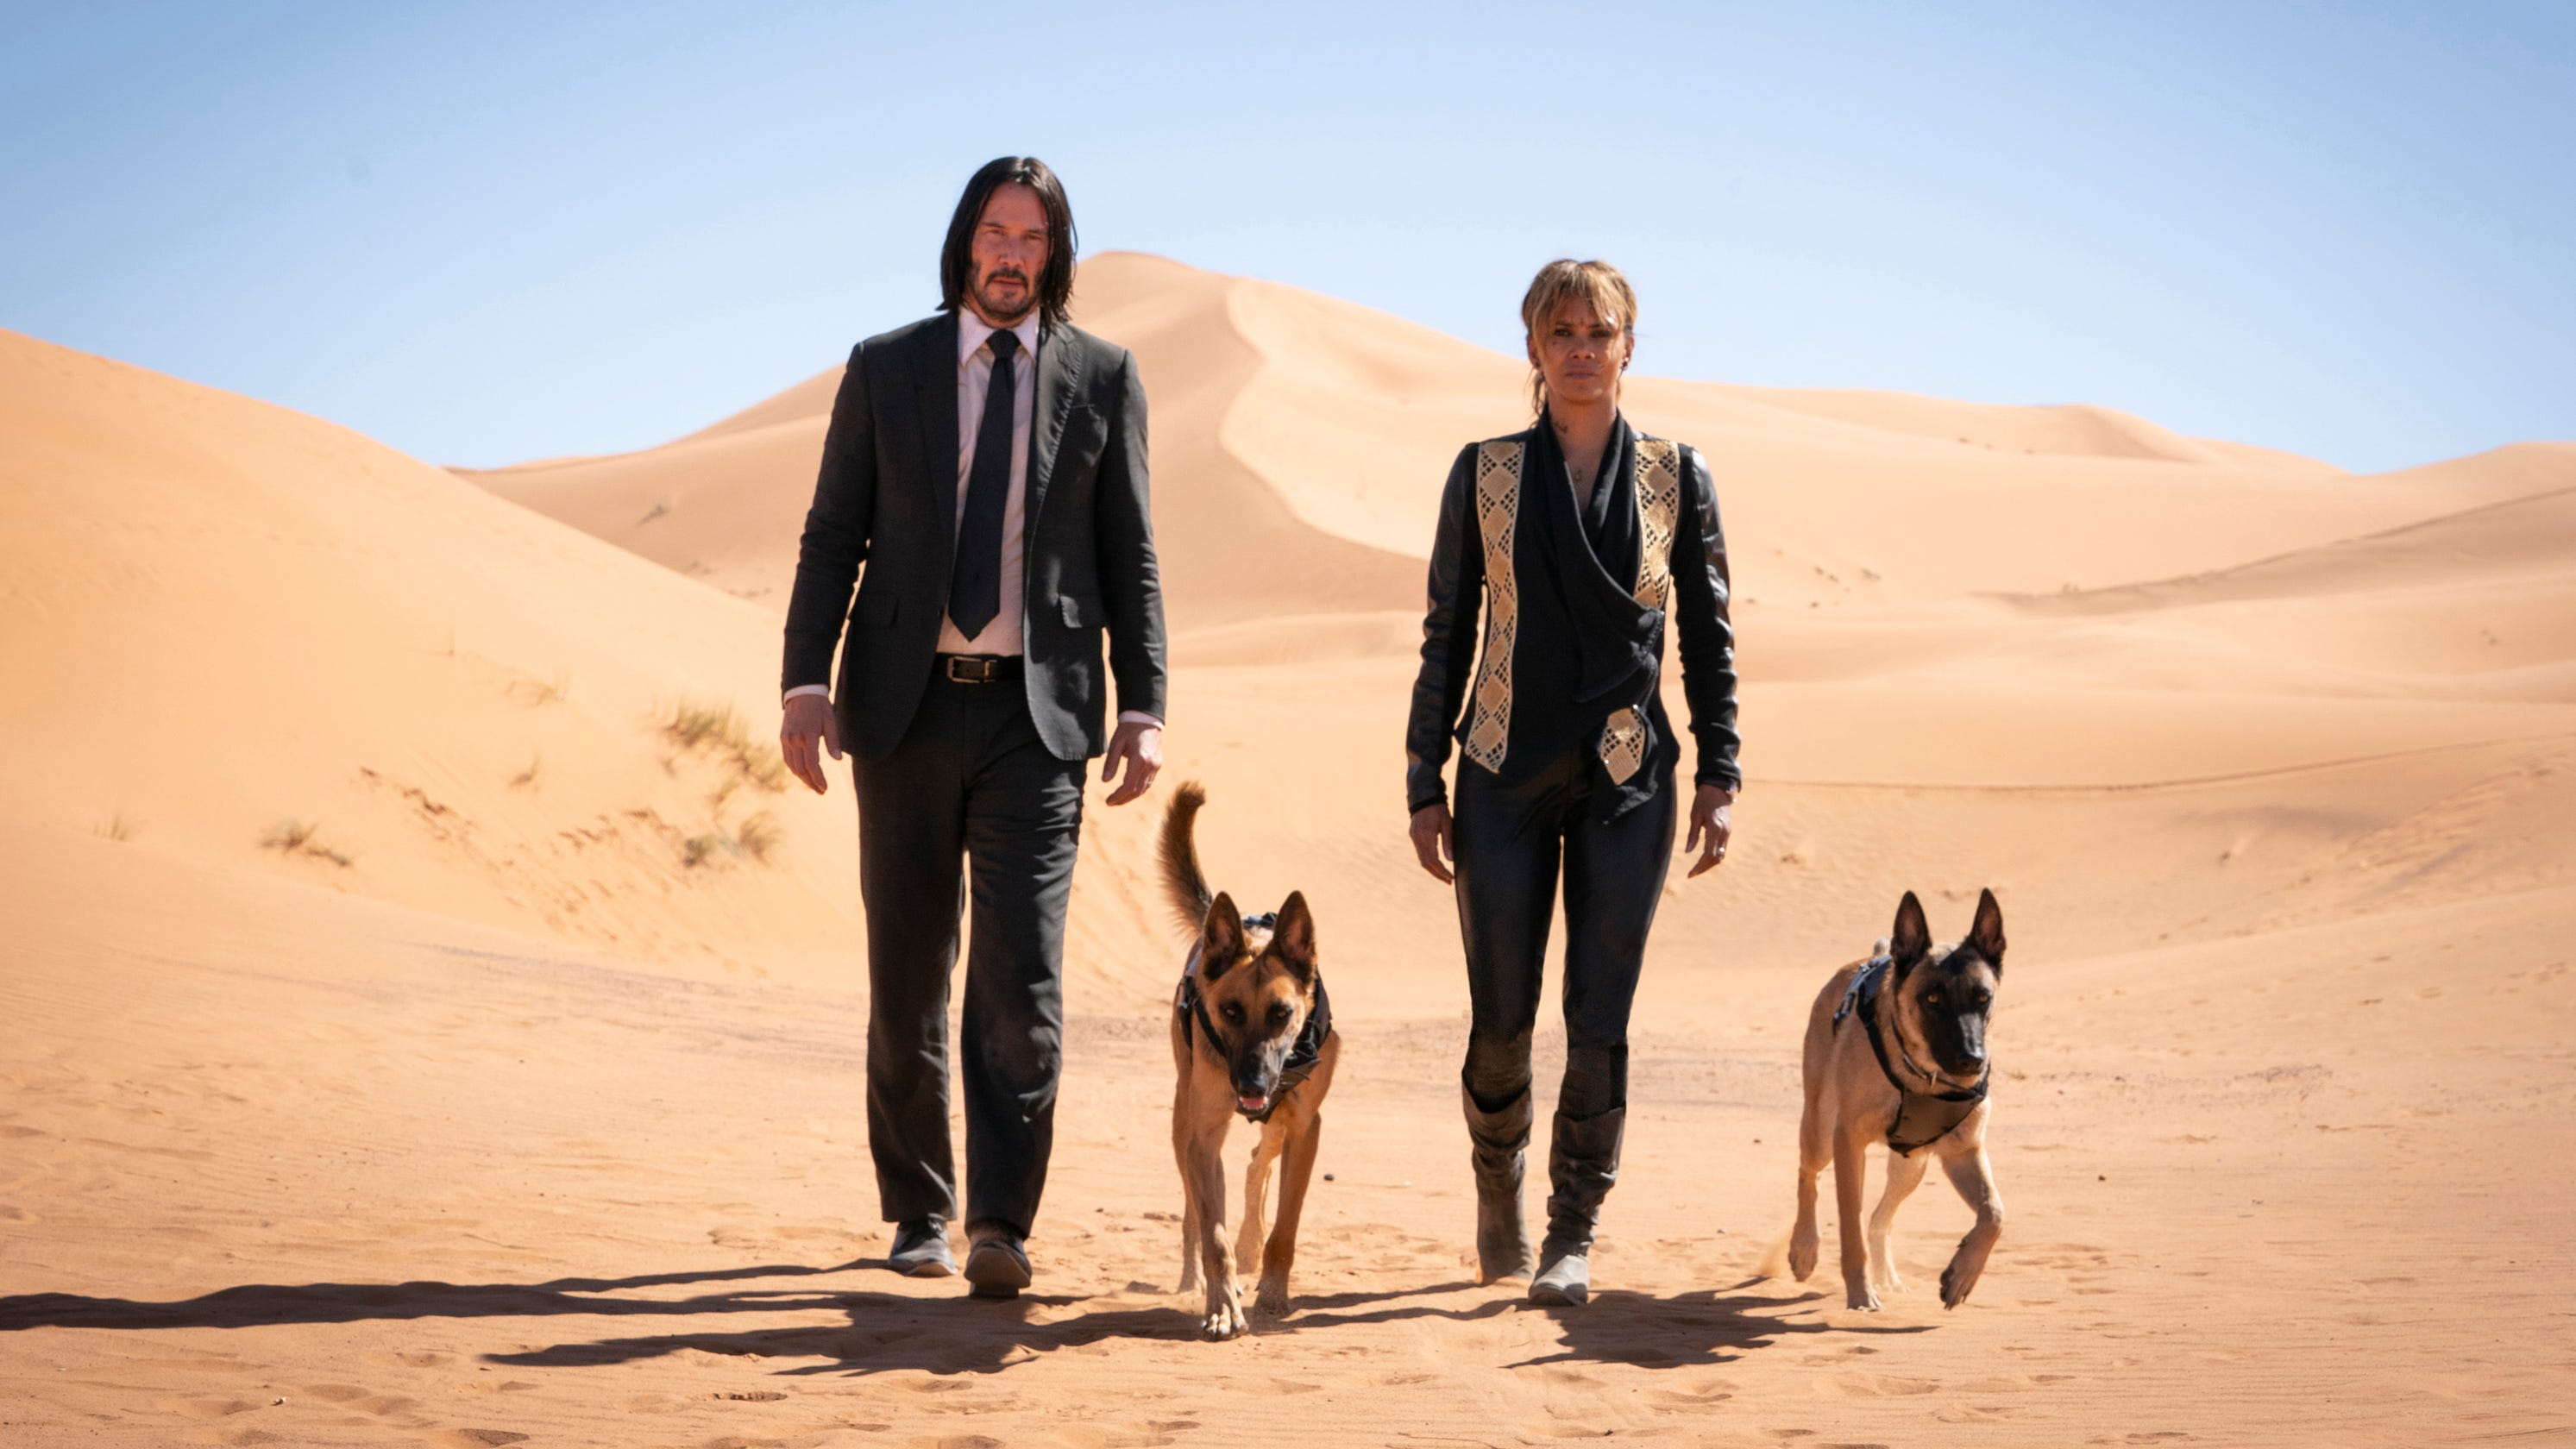 'John Wick 3' takes out 'Avengers: Endgame' with $57 million box-office debut